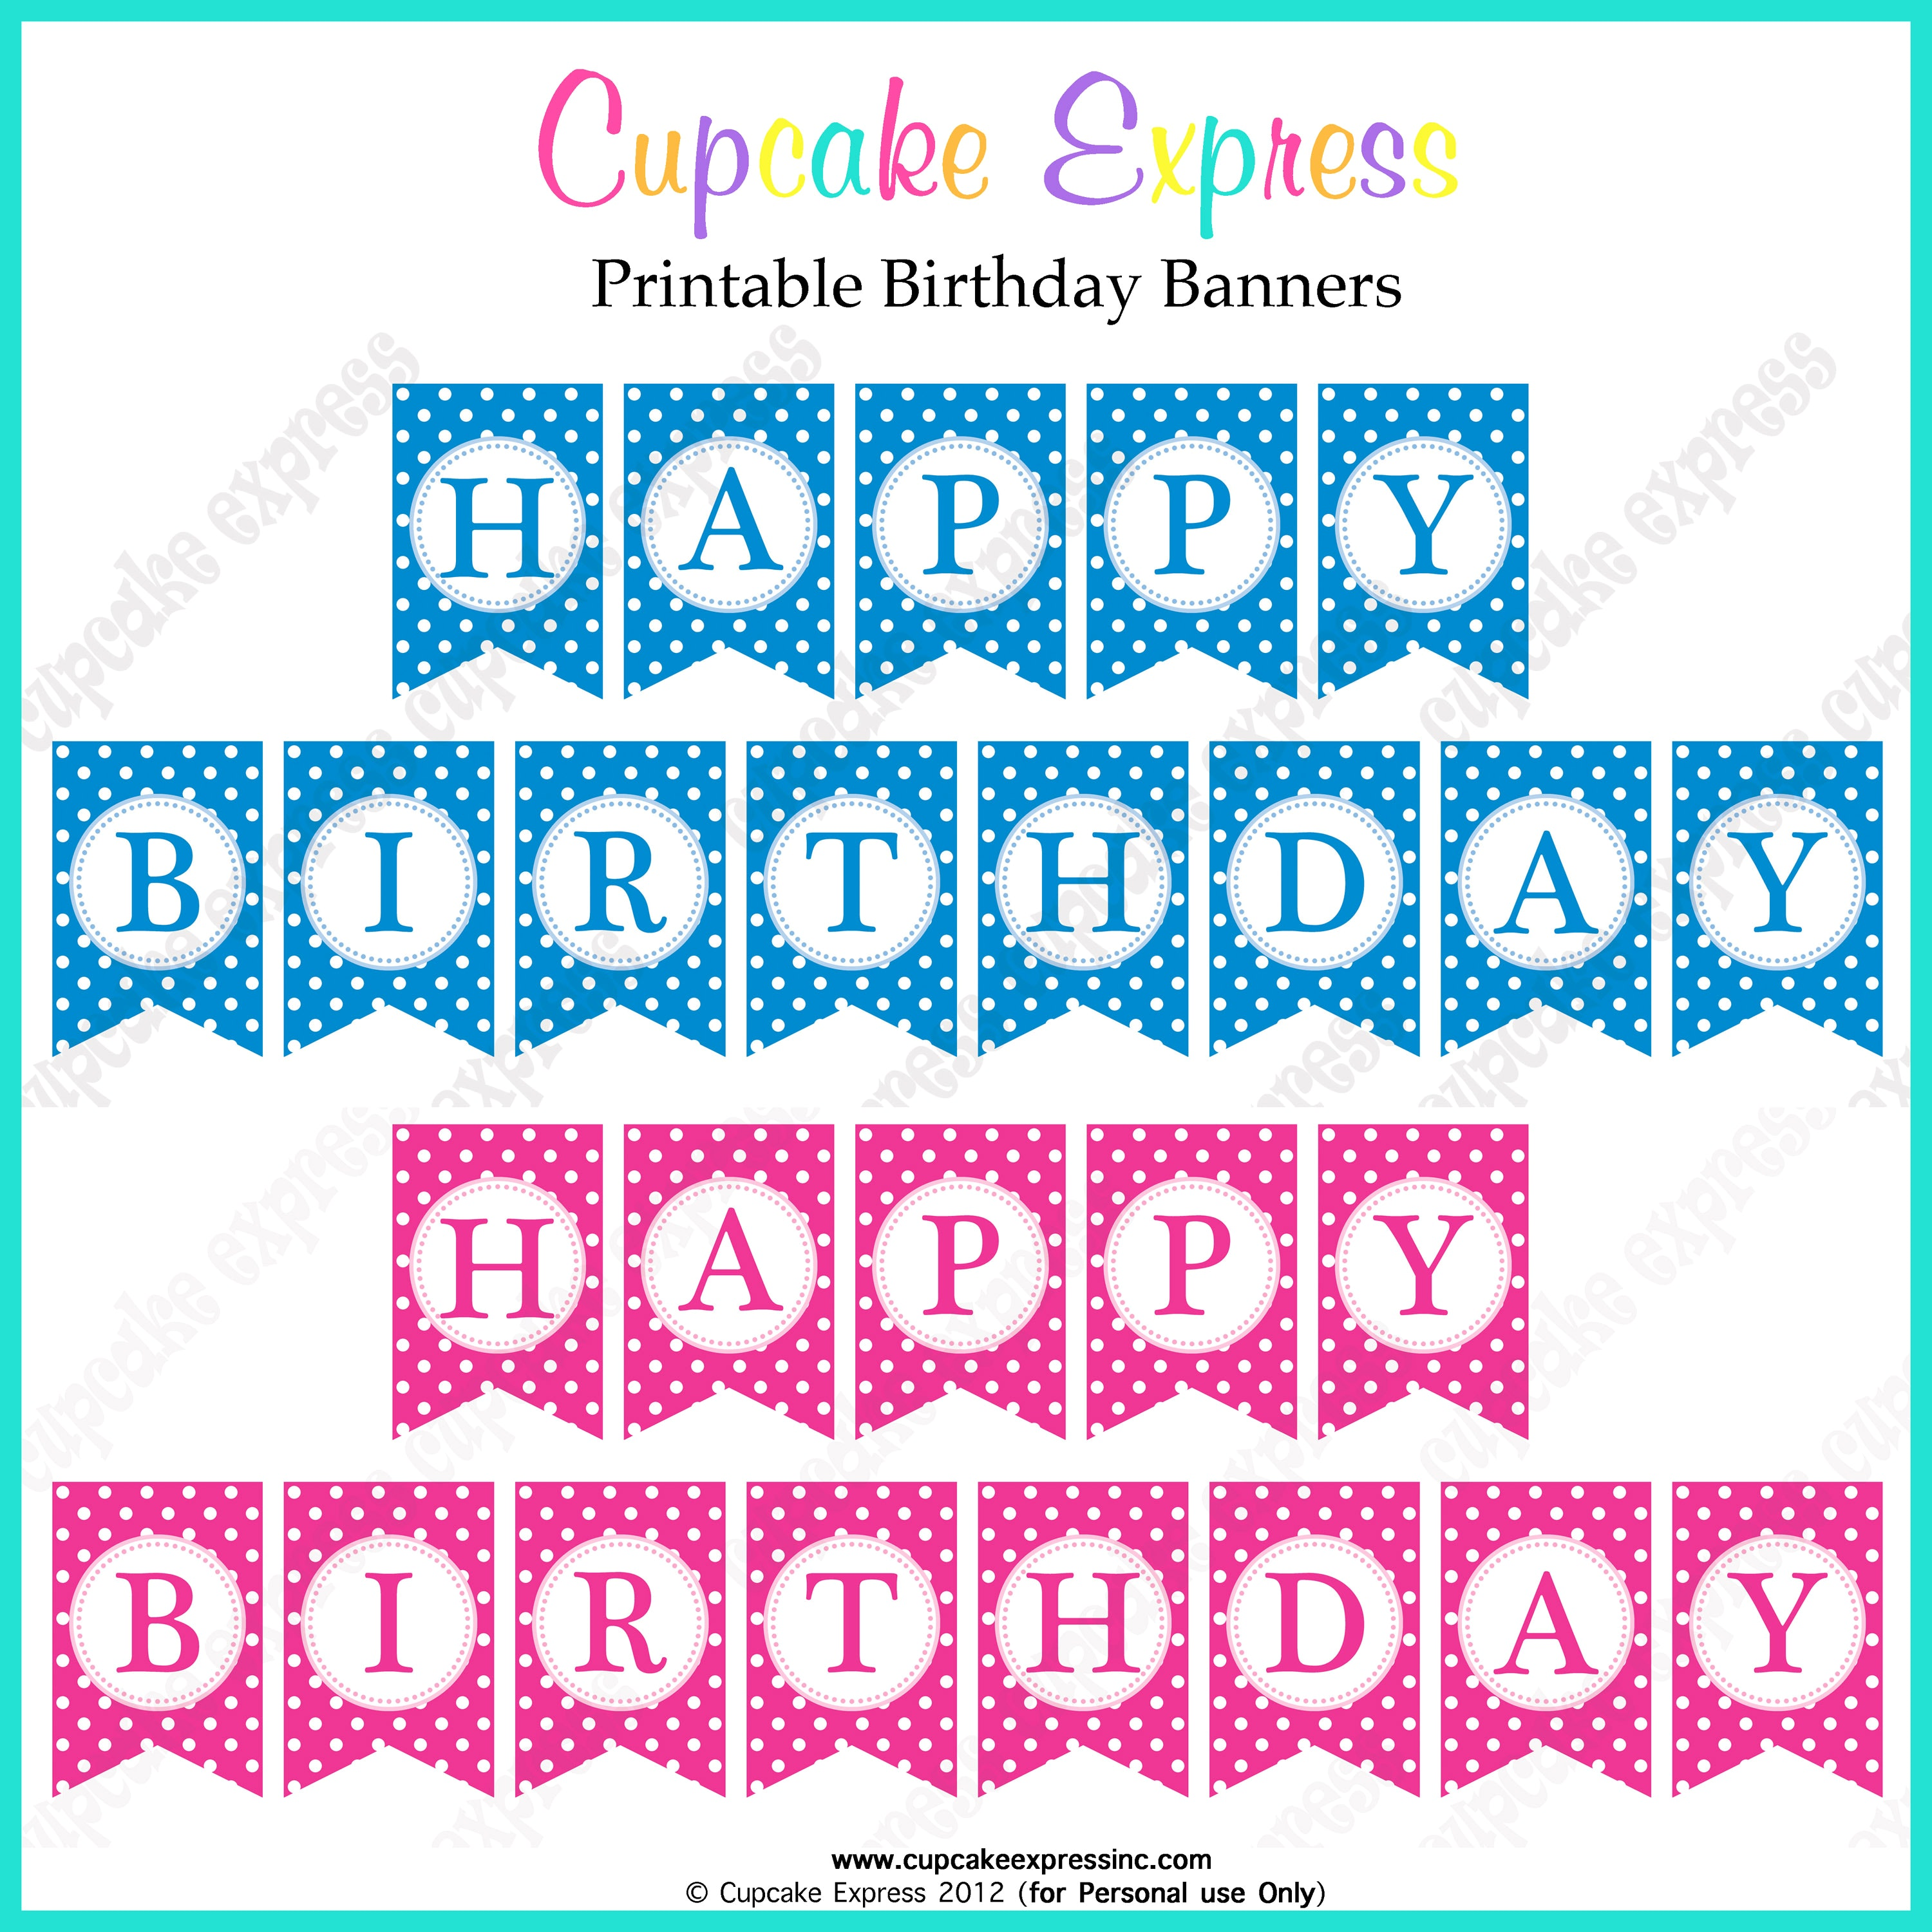 free printable birthday posters and banners ; wonderful-make-happy-birthday-poster-and-incredible-ideas-of-free-printable-birthday-banners-pink-blue-posters-8